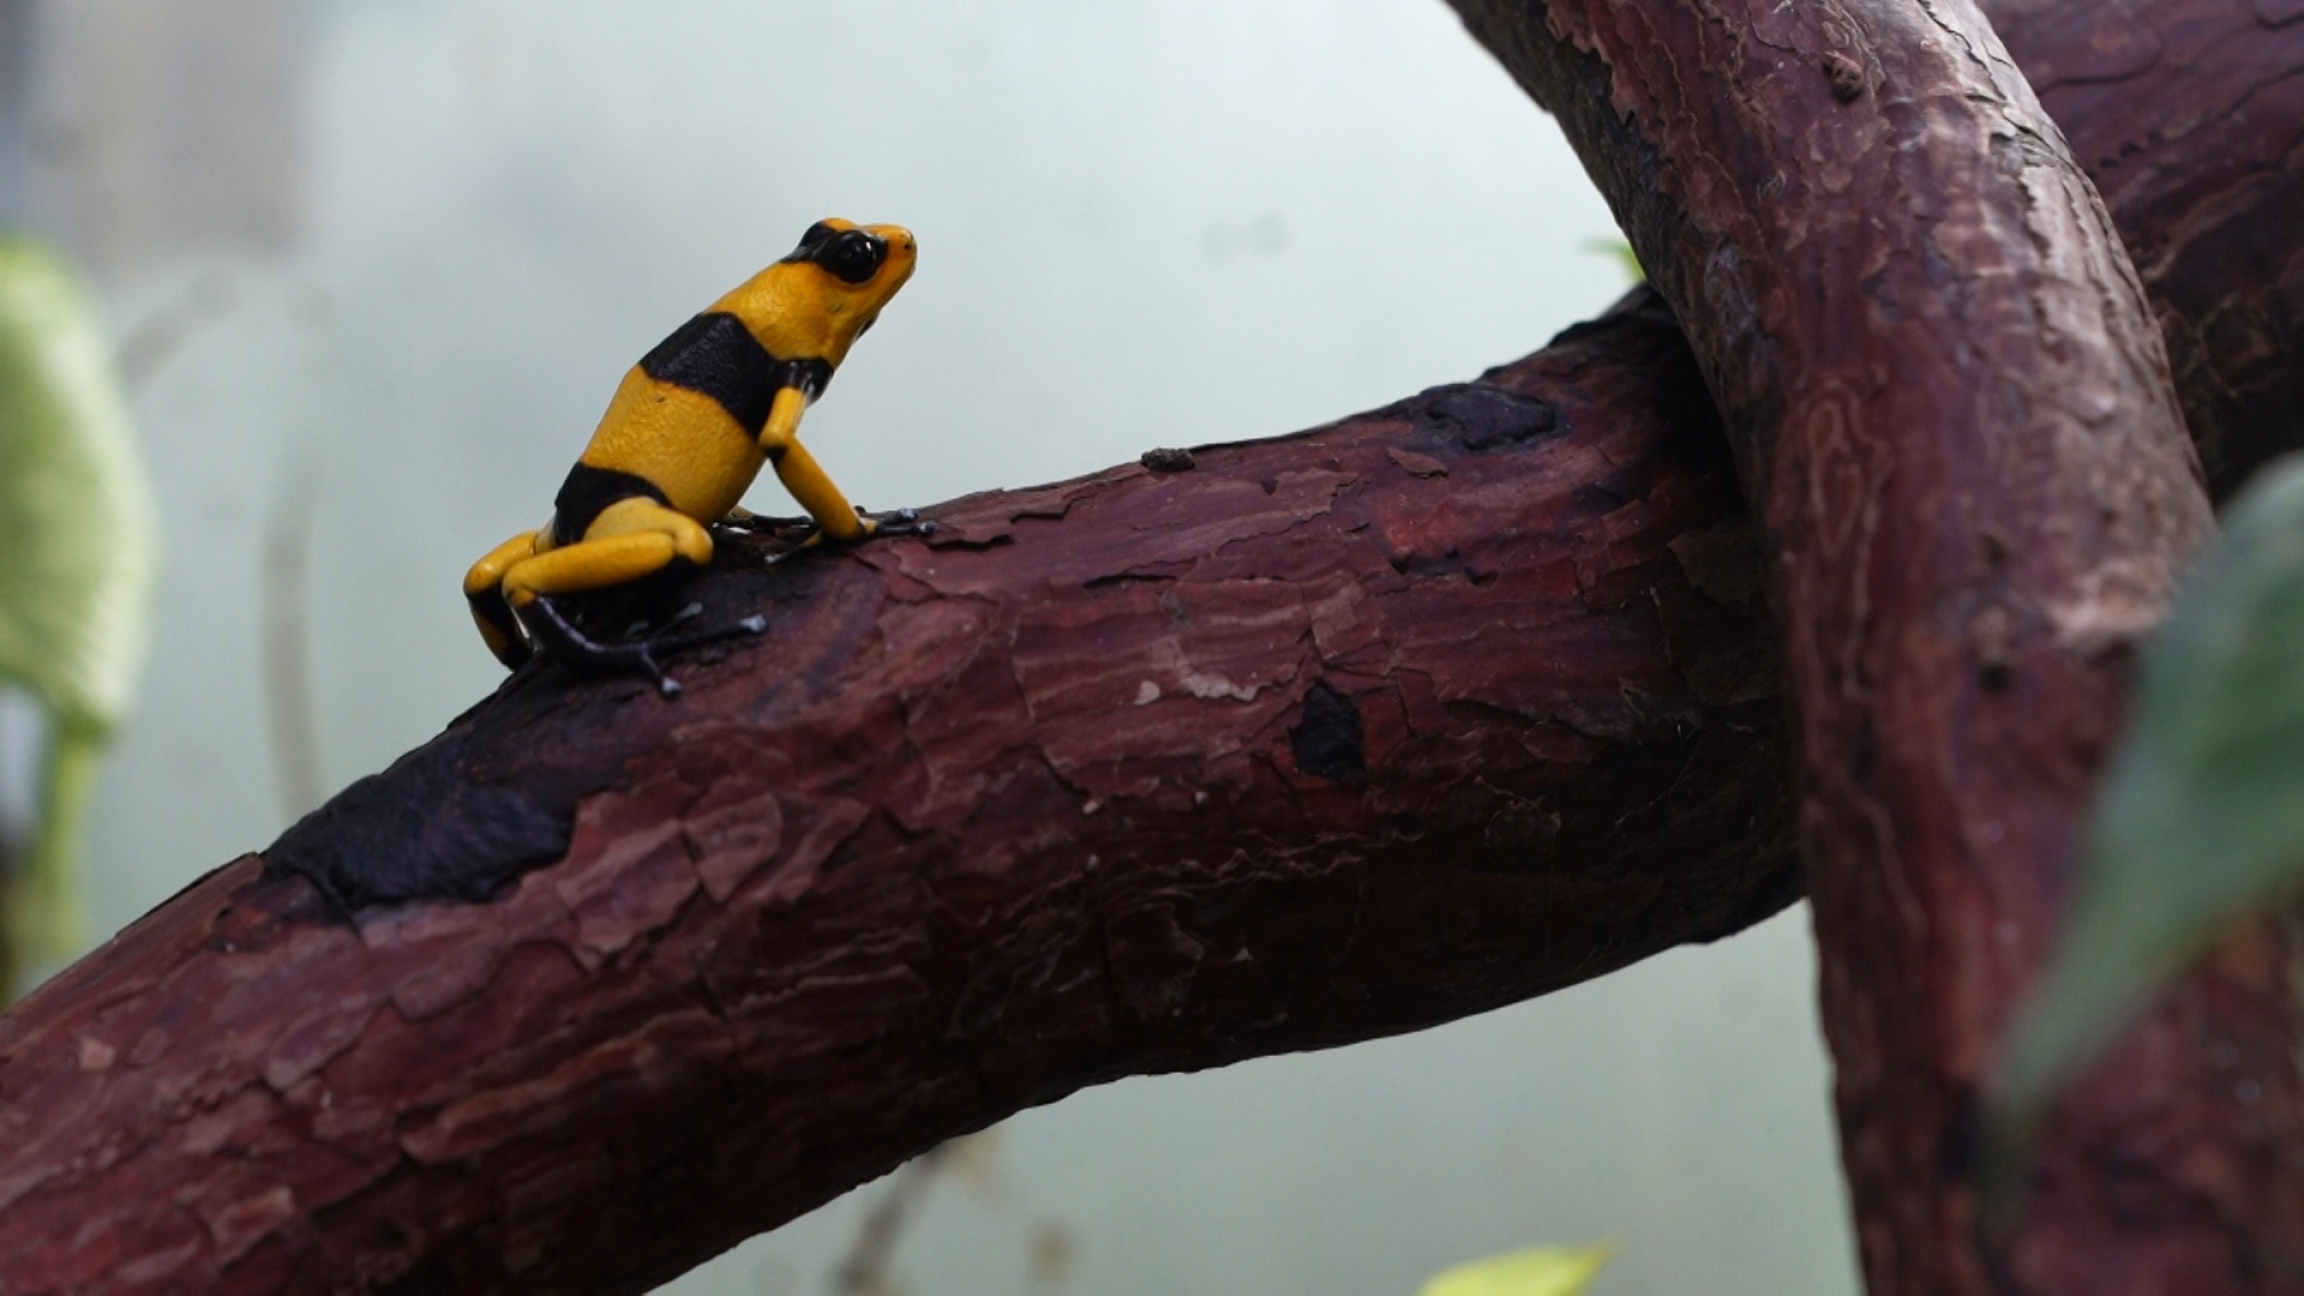 A yellow and black striped frog sits on a branch